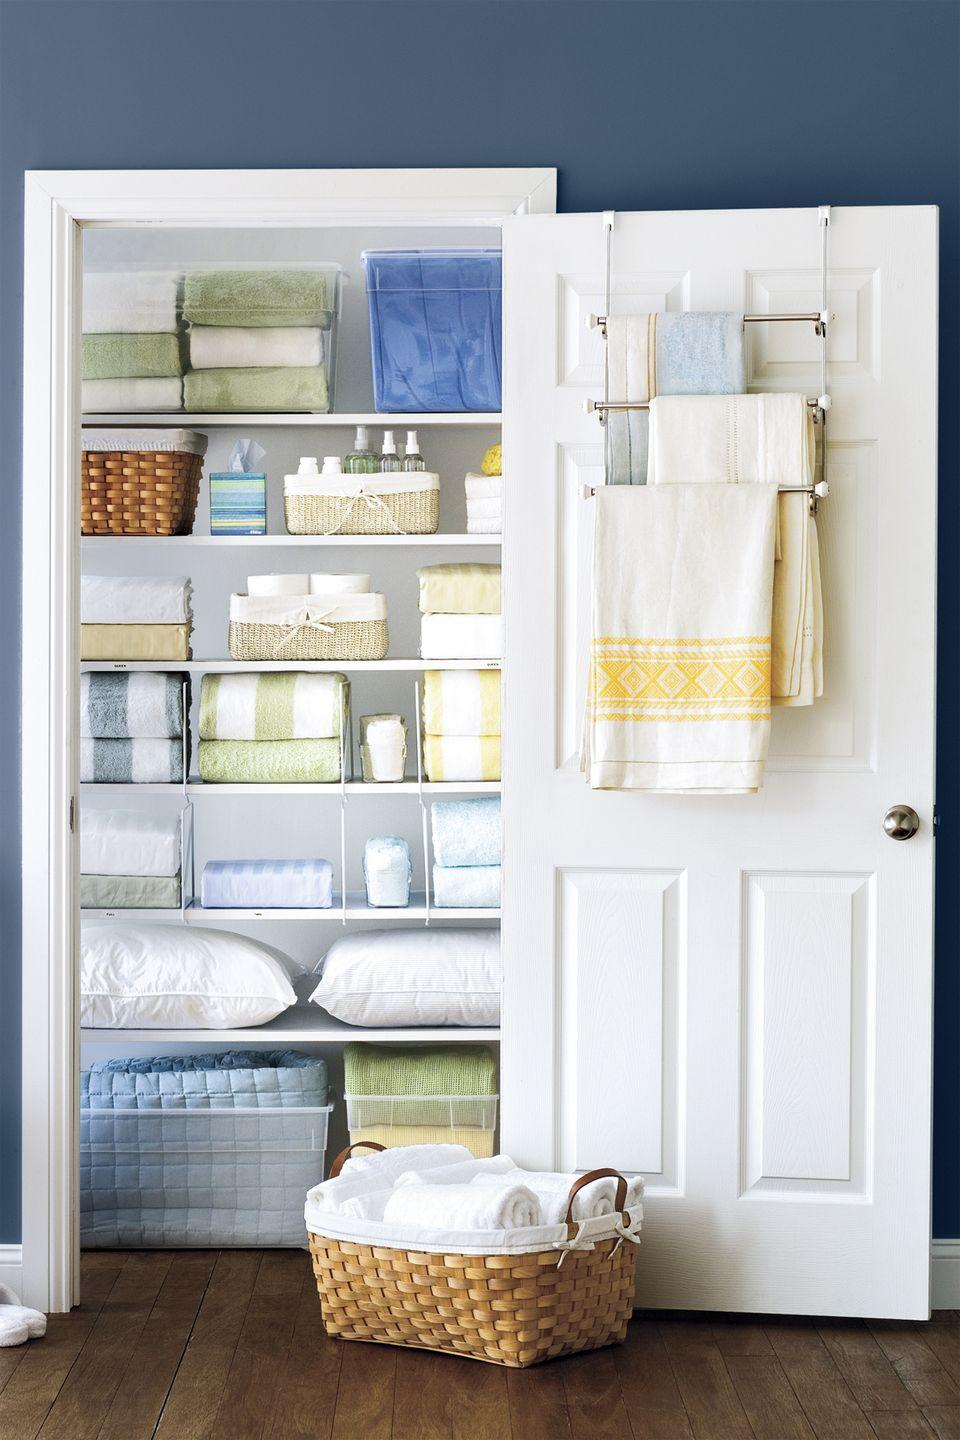 """<p>They're not just for bathrooms. An over-the-door hanger creates out-of-sight storage space for extra tablecloths, throws, or towels. </p><p><a class=""""link rapid-noclick-resp"""" href=""""https://www.amazon.com/Franklin-Brass-193153-FN-Triple-Nickel/dp/B01JUD4PUI/?tag=syn-yahoo-20&ascsubtag=%5Bartid%7C2164.g.35037072%5Bsrc%7Cyahoo-us"""" rel=""""nofollow noopener"""" target=""""_blank"""" data-ylk=""""slk:SHOP TOWEL RACKS"""">SHOP TOWEL RACKS</a></p>"""